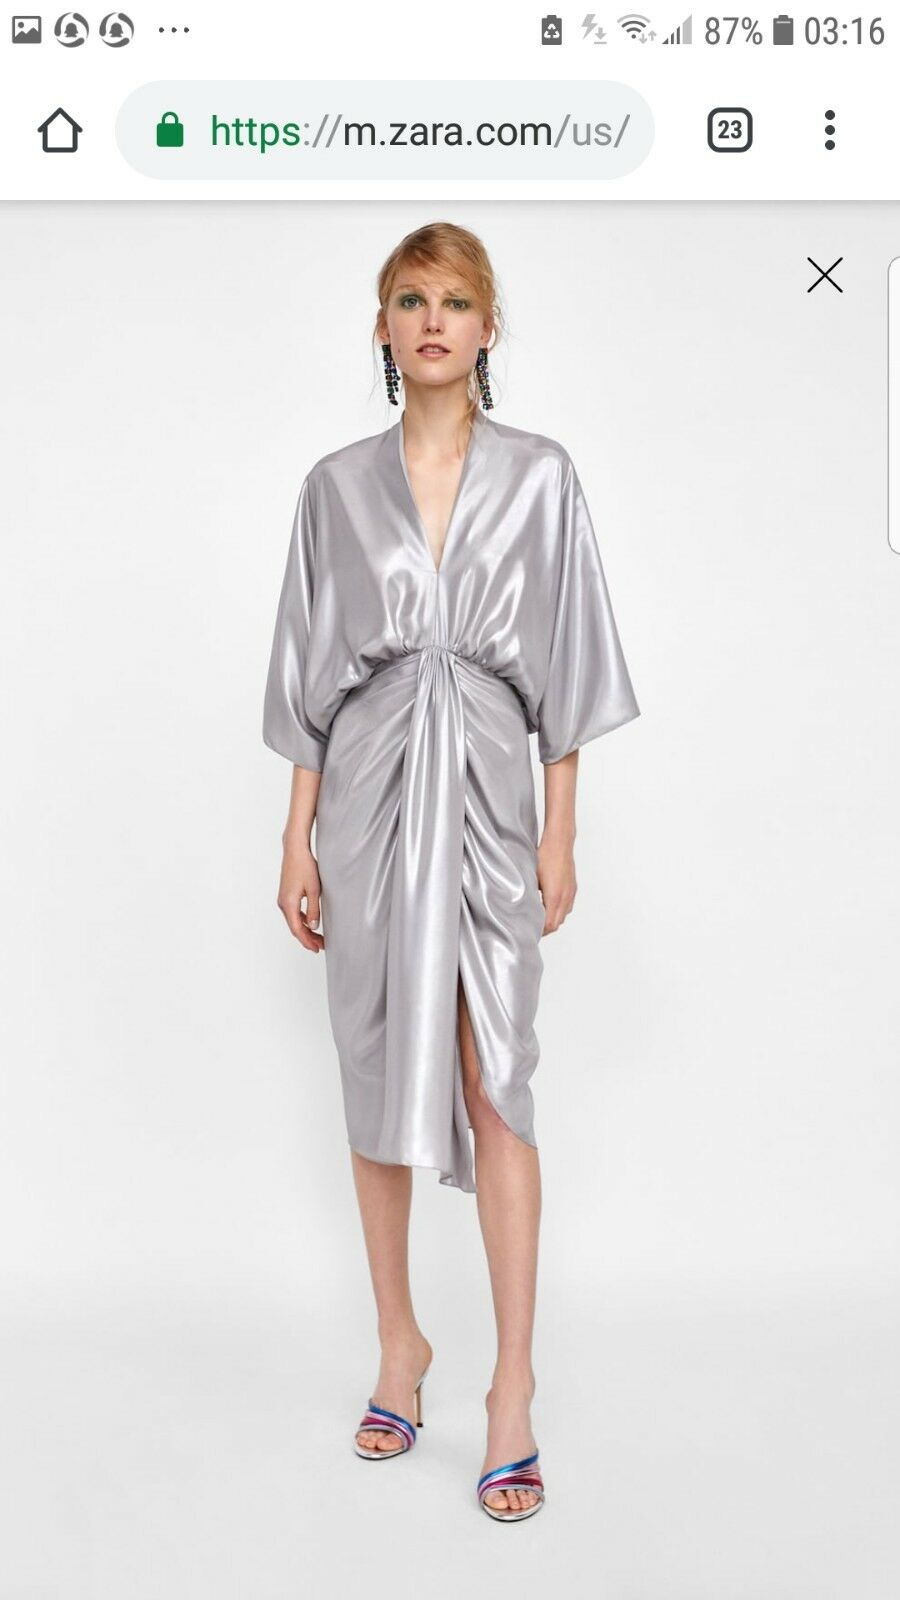 Zara metallic look dress small new